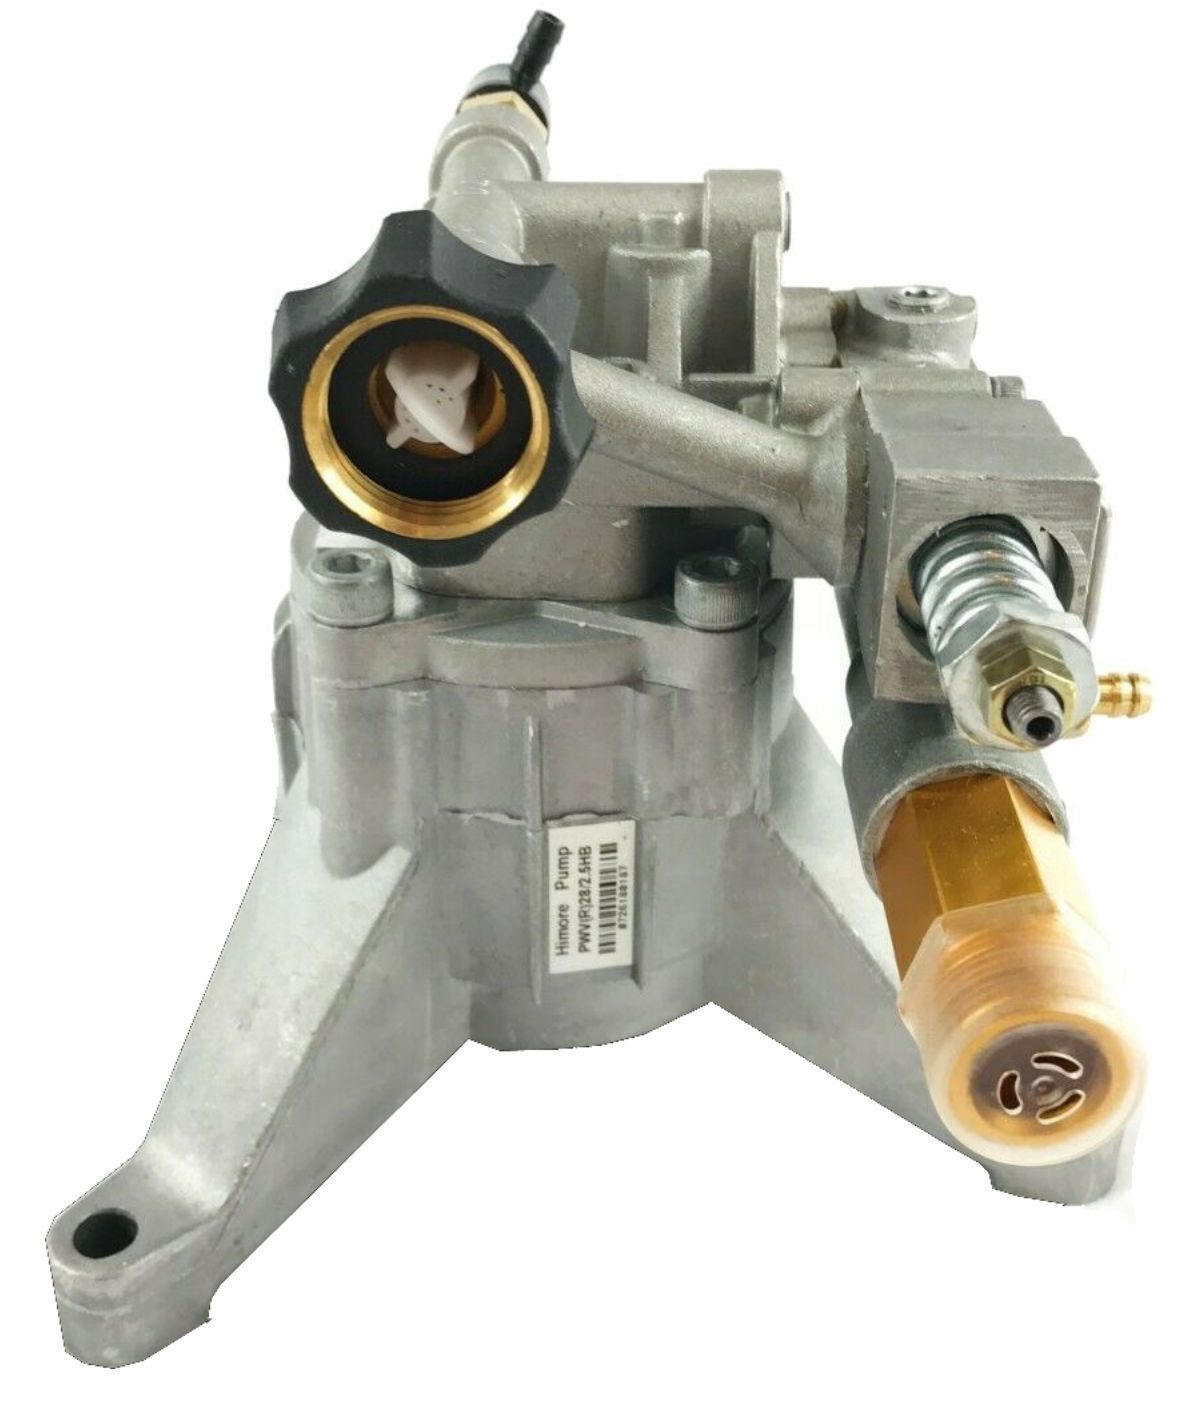 2700 PSI PRESSURE WASHER WATER PUMP Briggs & Stratton 020250 020250-0 - AE-Power